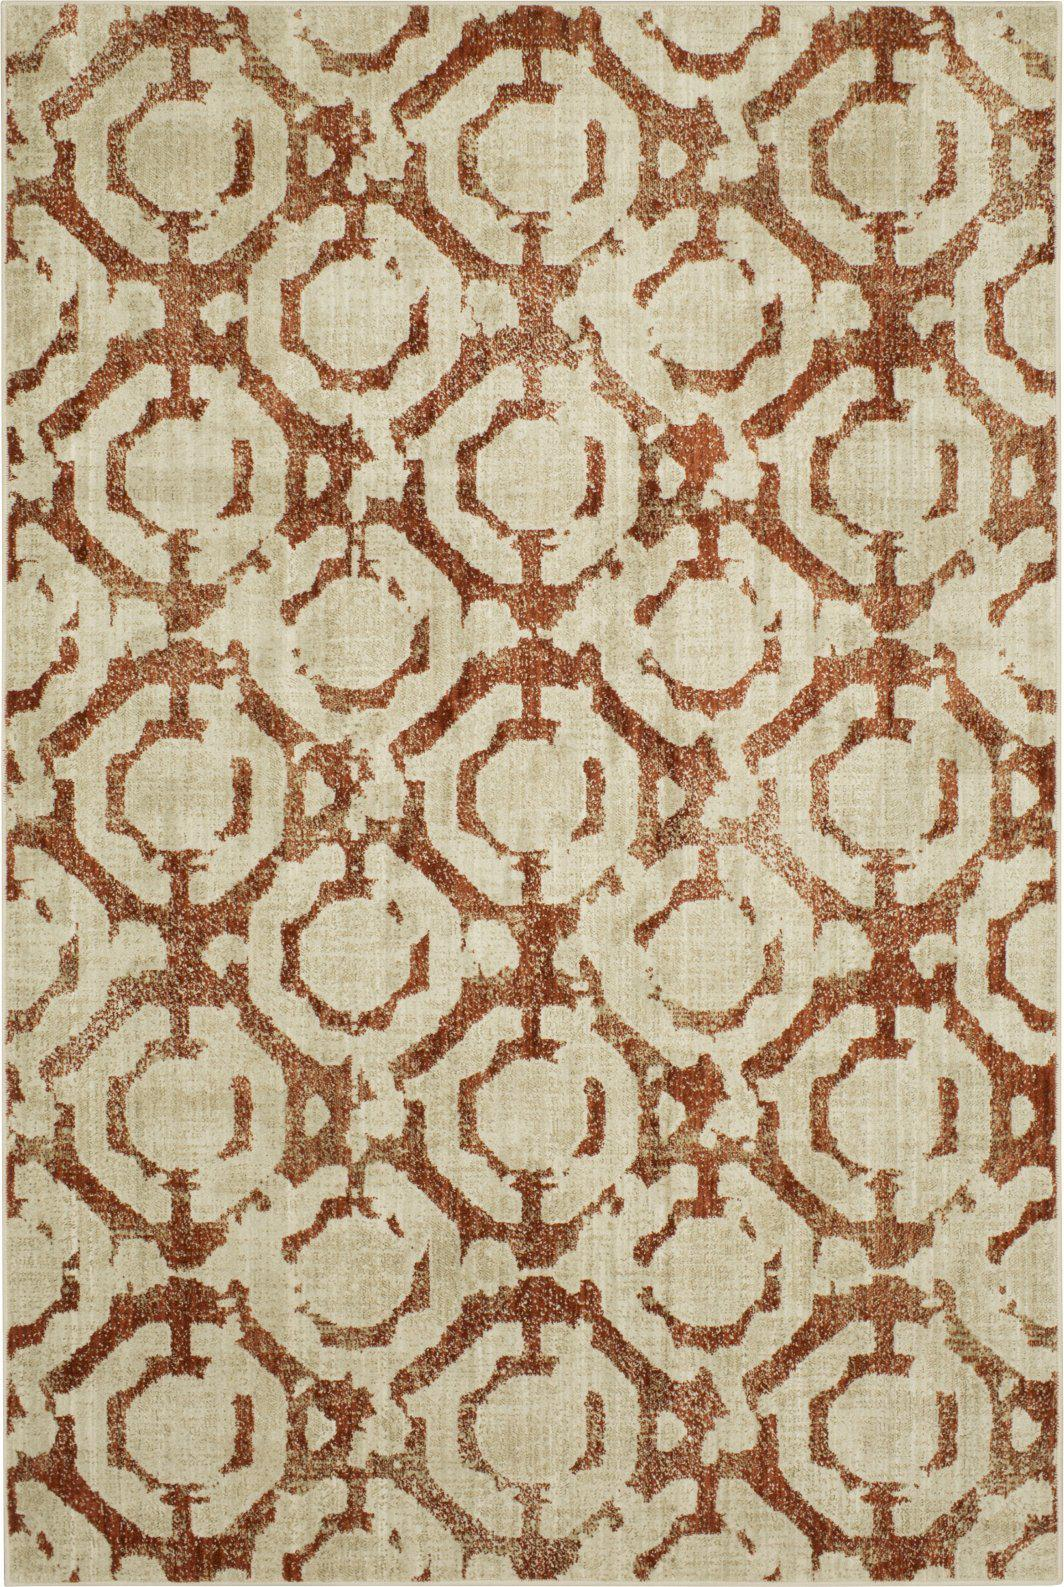 Expressions Motif Ginger by Scott Living Area Rug-Area Rug-Scott Living-The Rug Truck